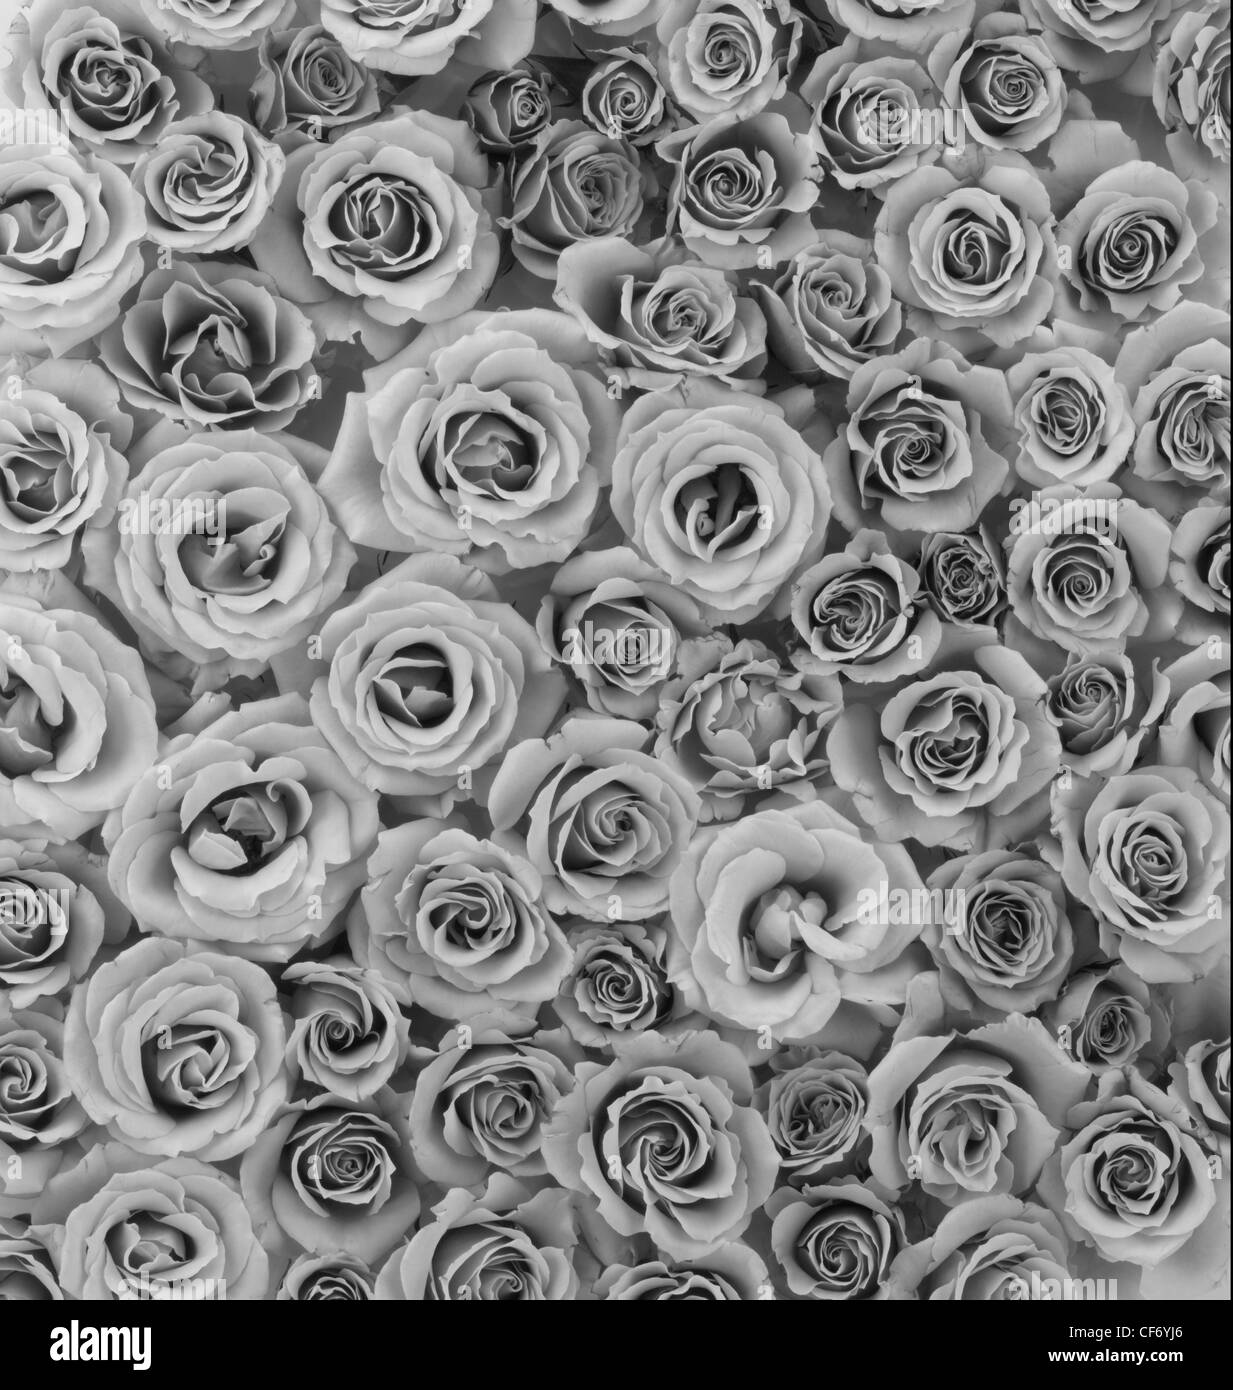 Flowers Tea Roses Vertical Photograph Black White Grey Muted